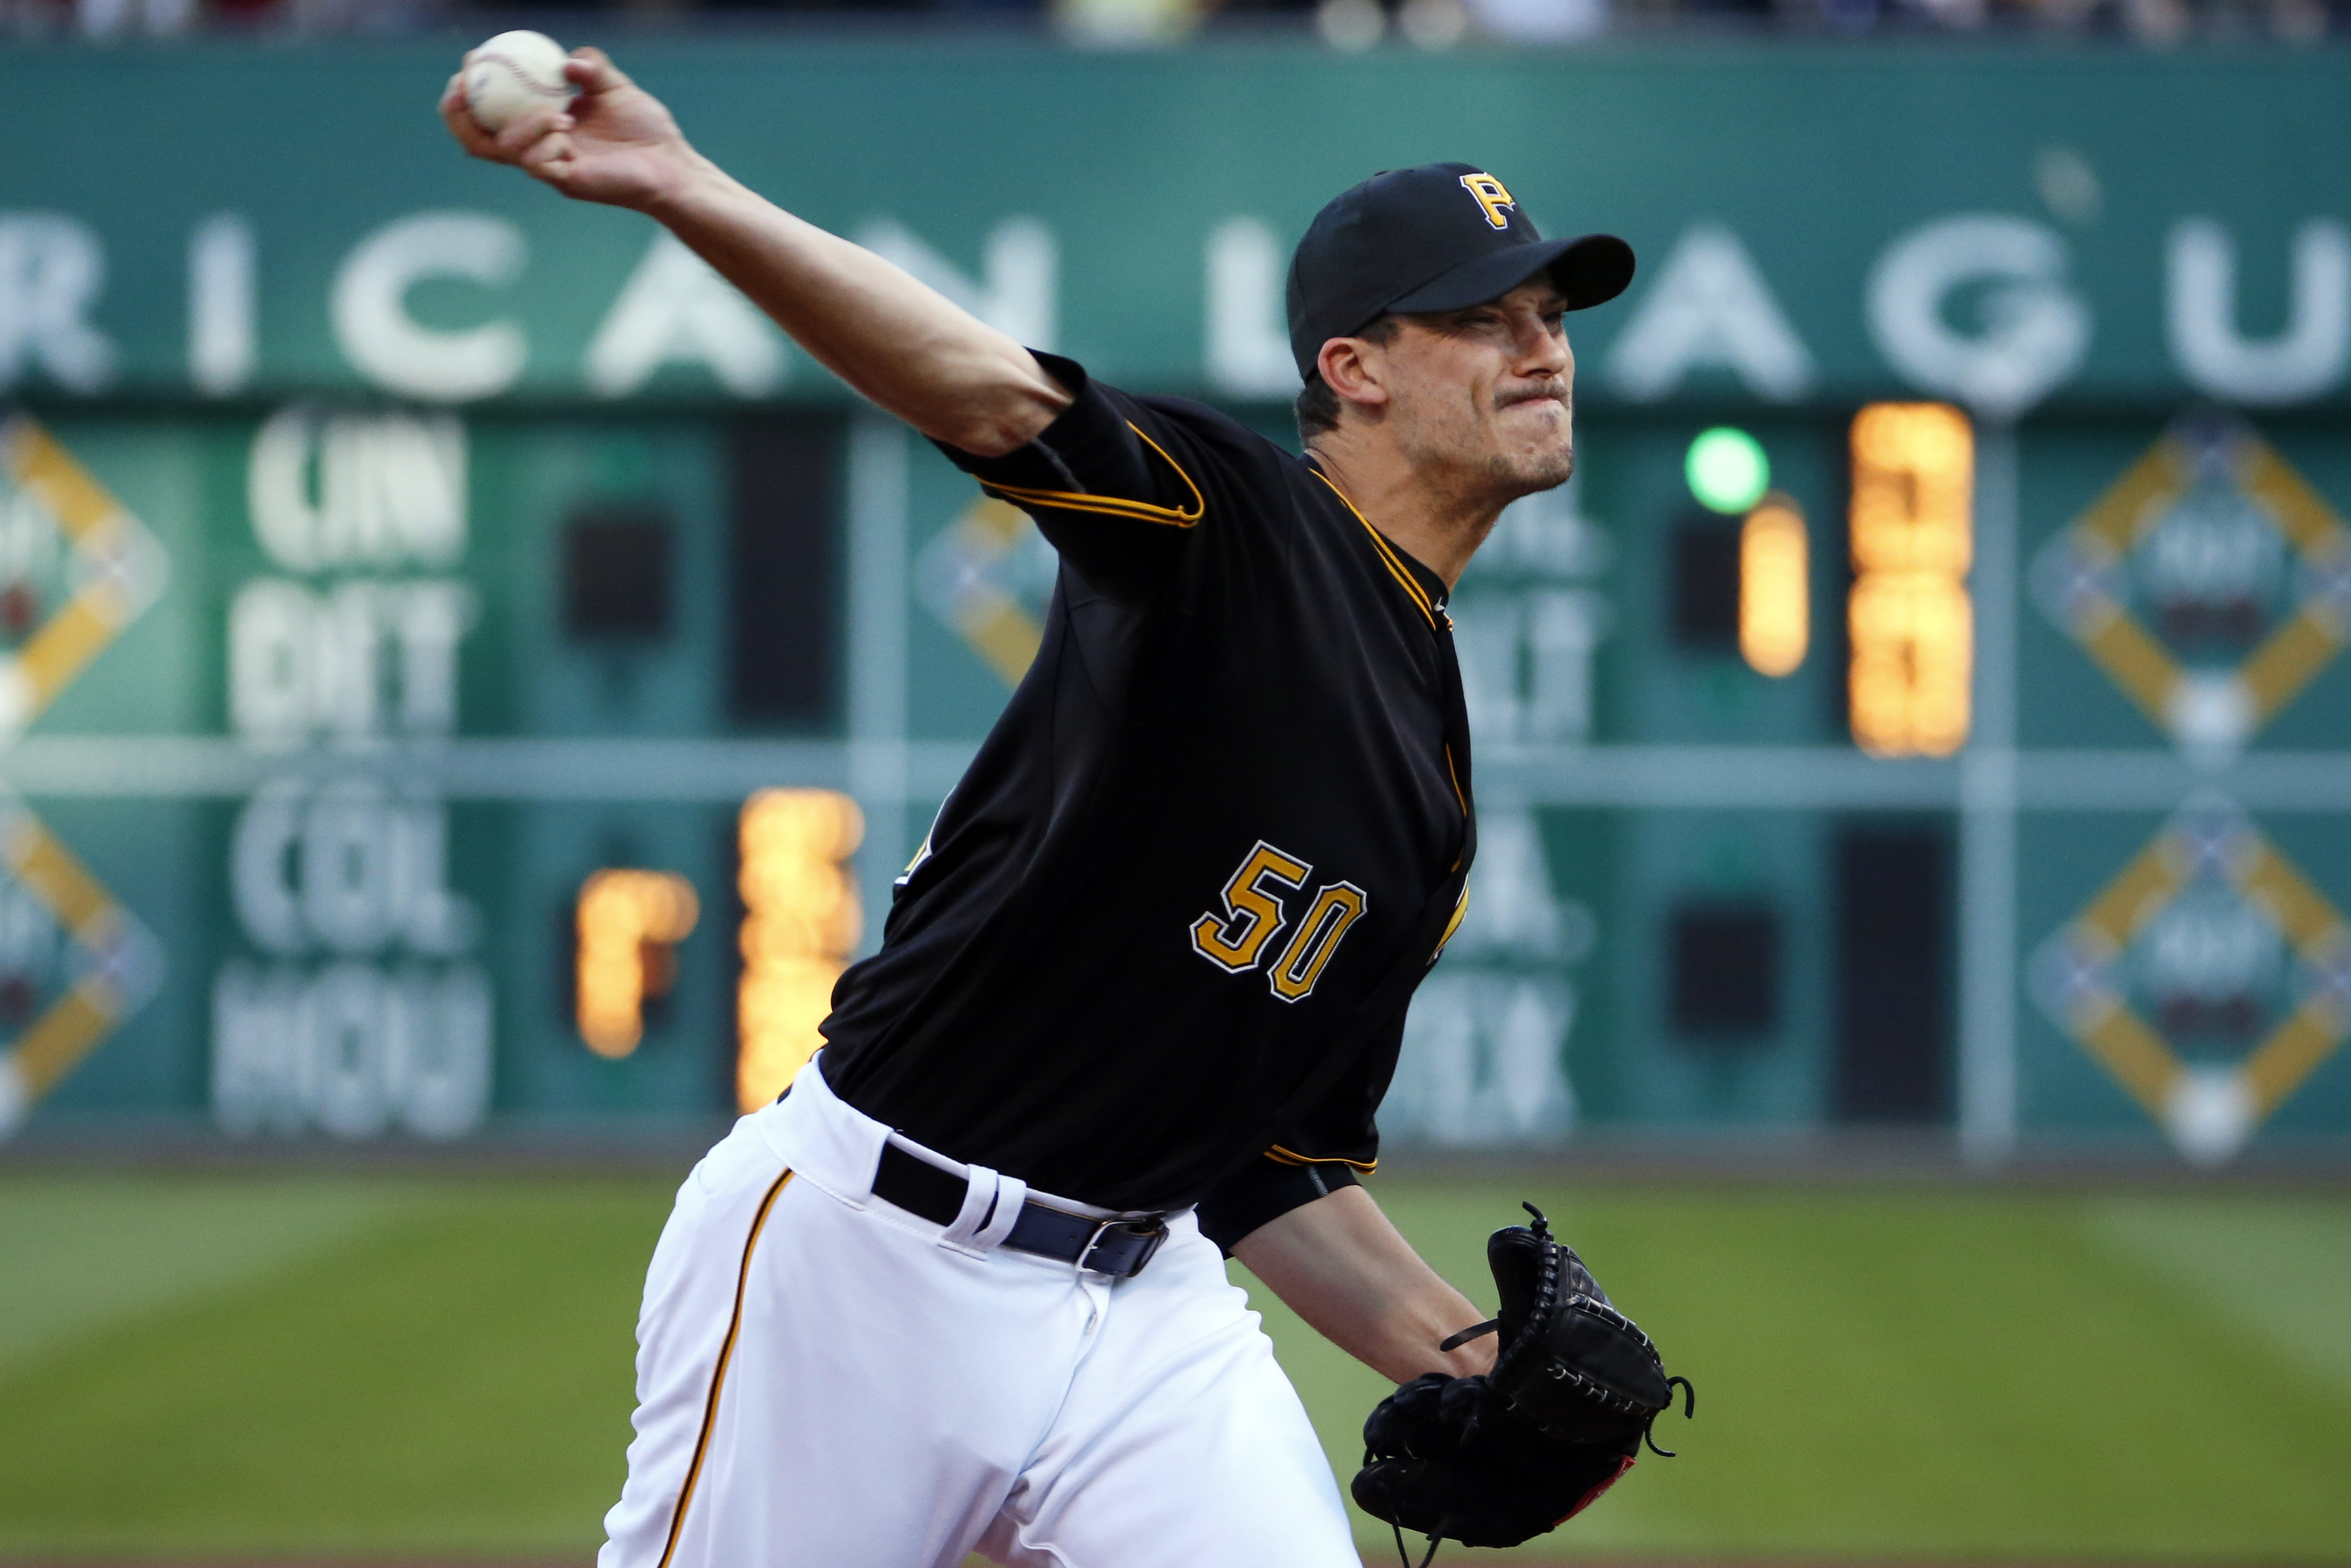 Pittsburgh Pirates starting pitcher Charlie Morton delivers during the first inning of a baseball game against the Chicago White Sox in Pittsburgh, Tuesday, June 16, 2015. (AP Photo/Gene J. Puskar)